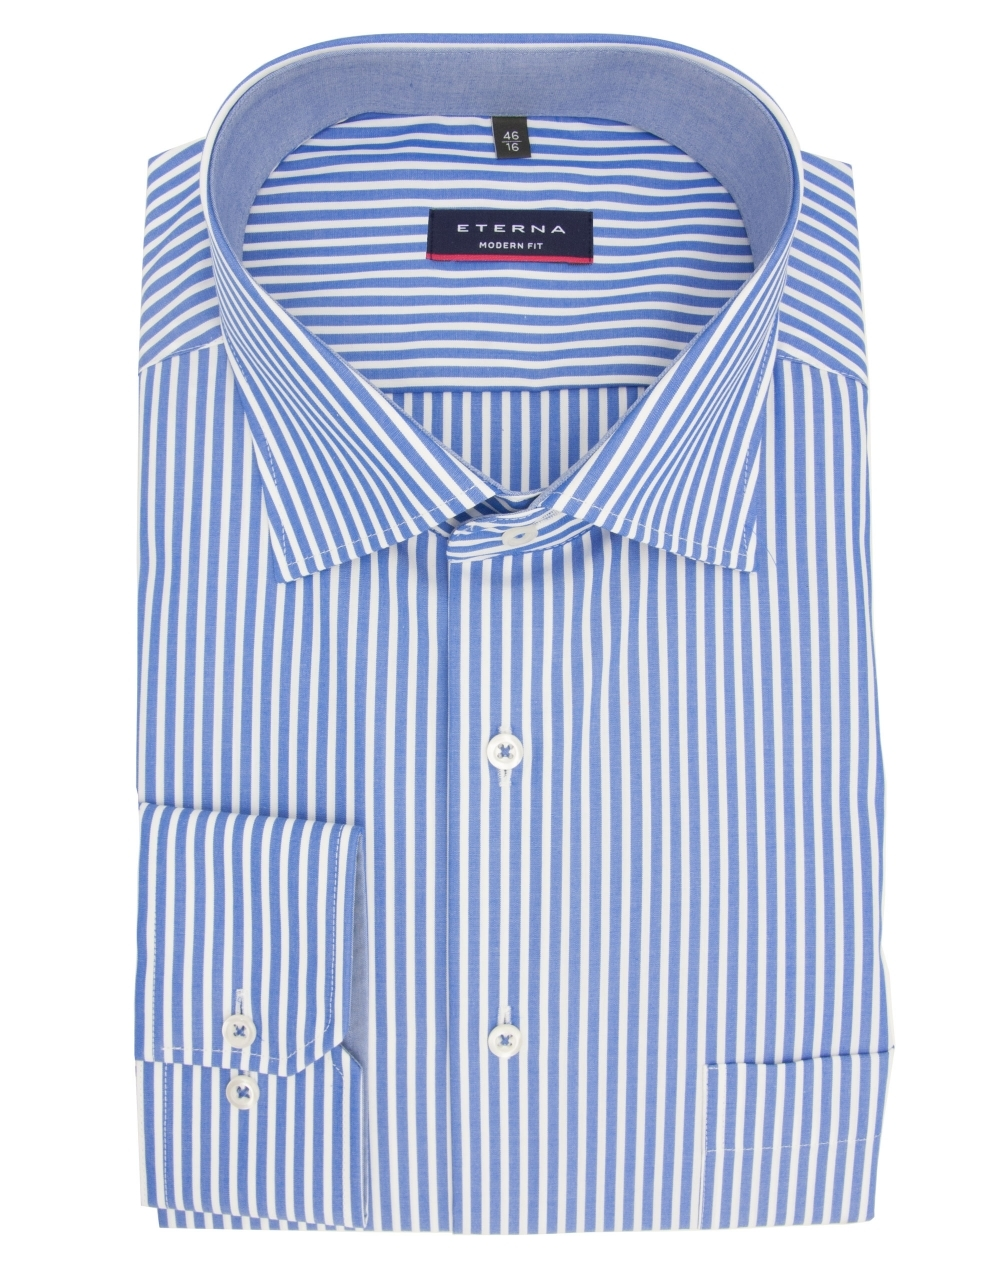 Eterna blue striped shirt